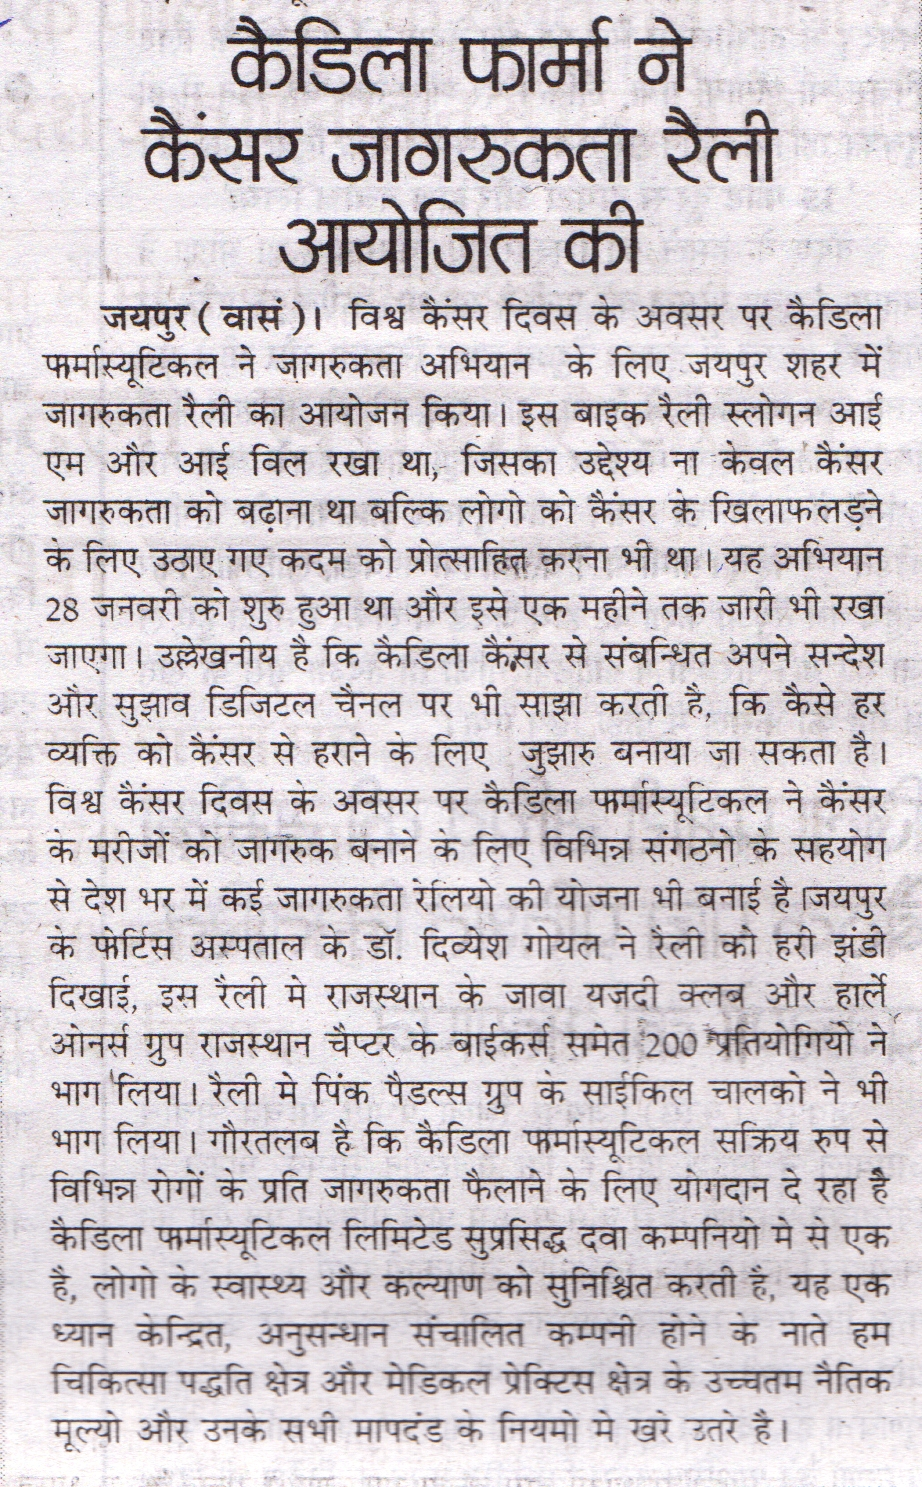 Dainik Adhikar Coverage